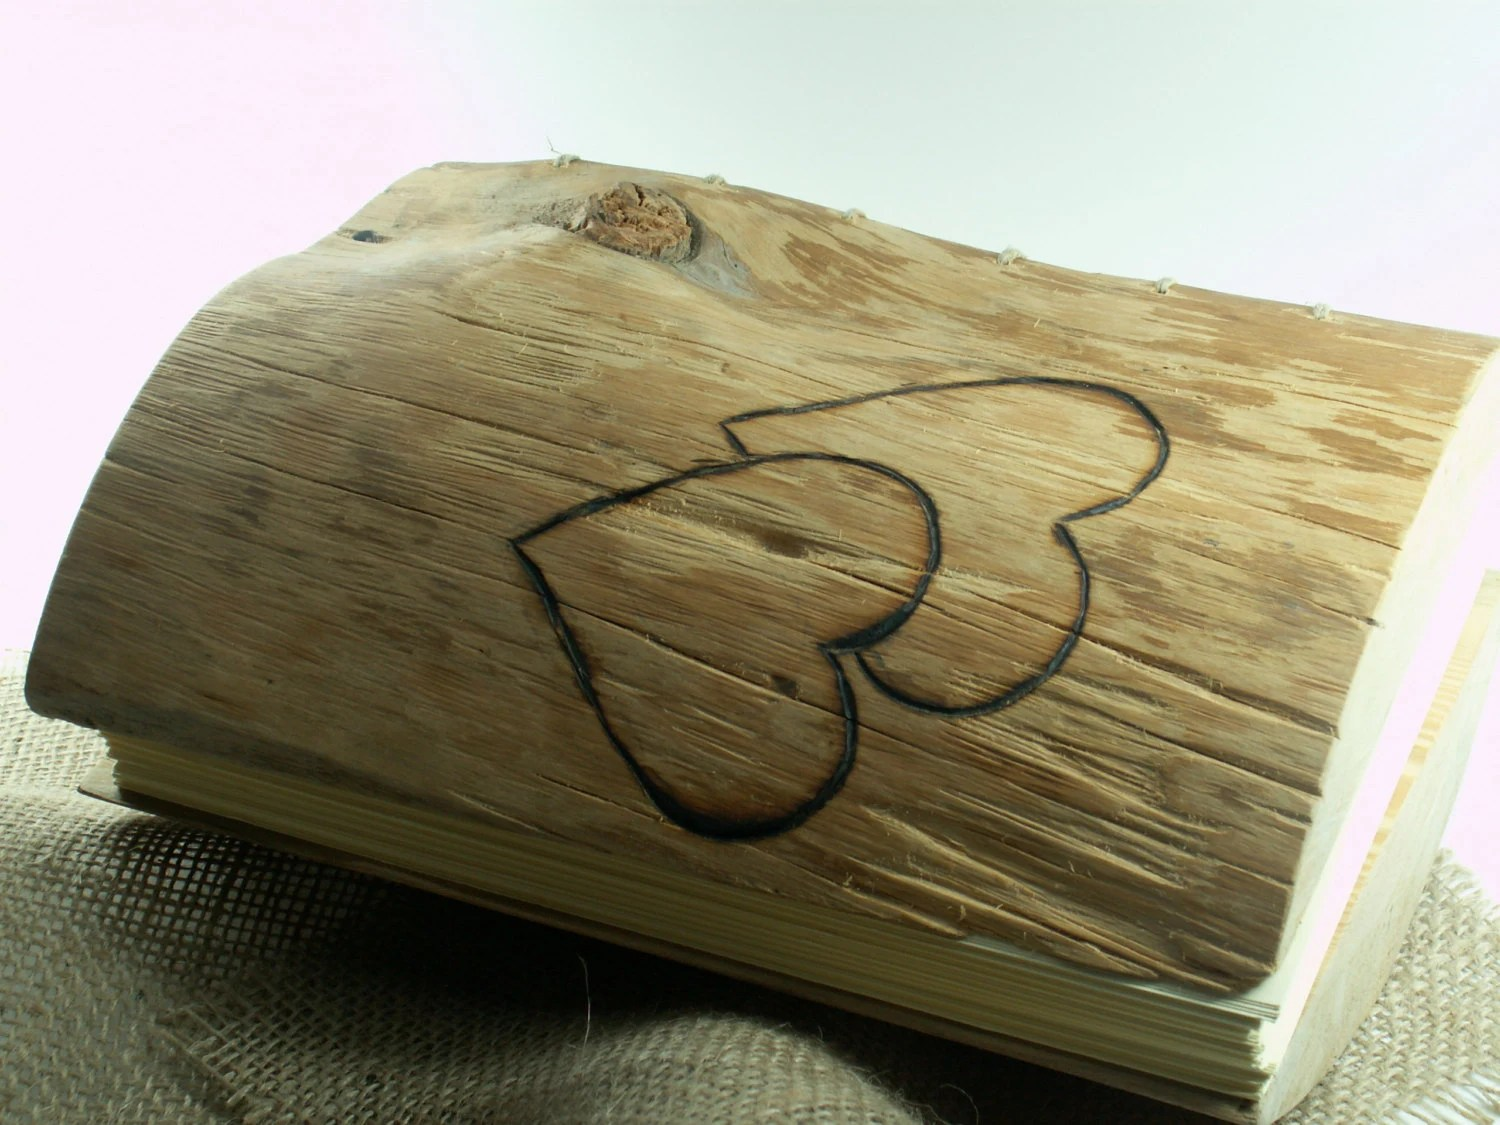 WEDDING GUEST BOOK Wood Journal Two Hearts - woodenartgallery